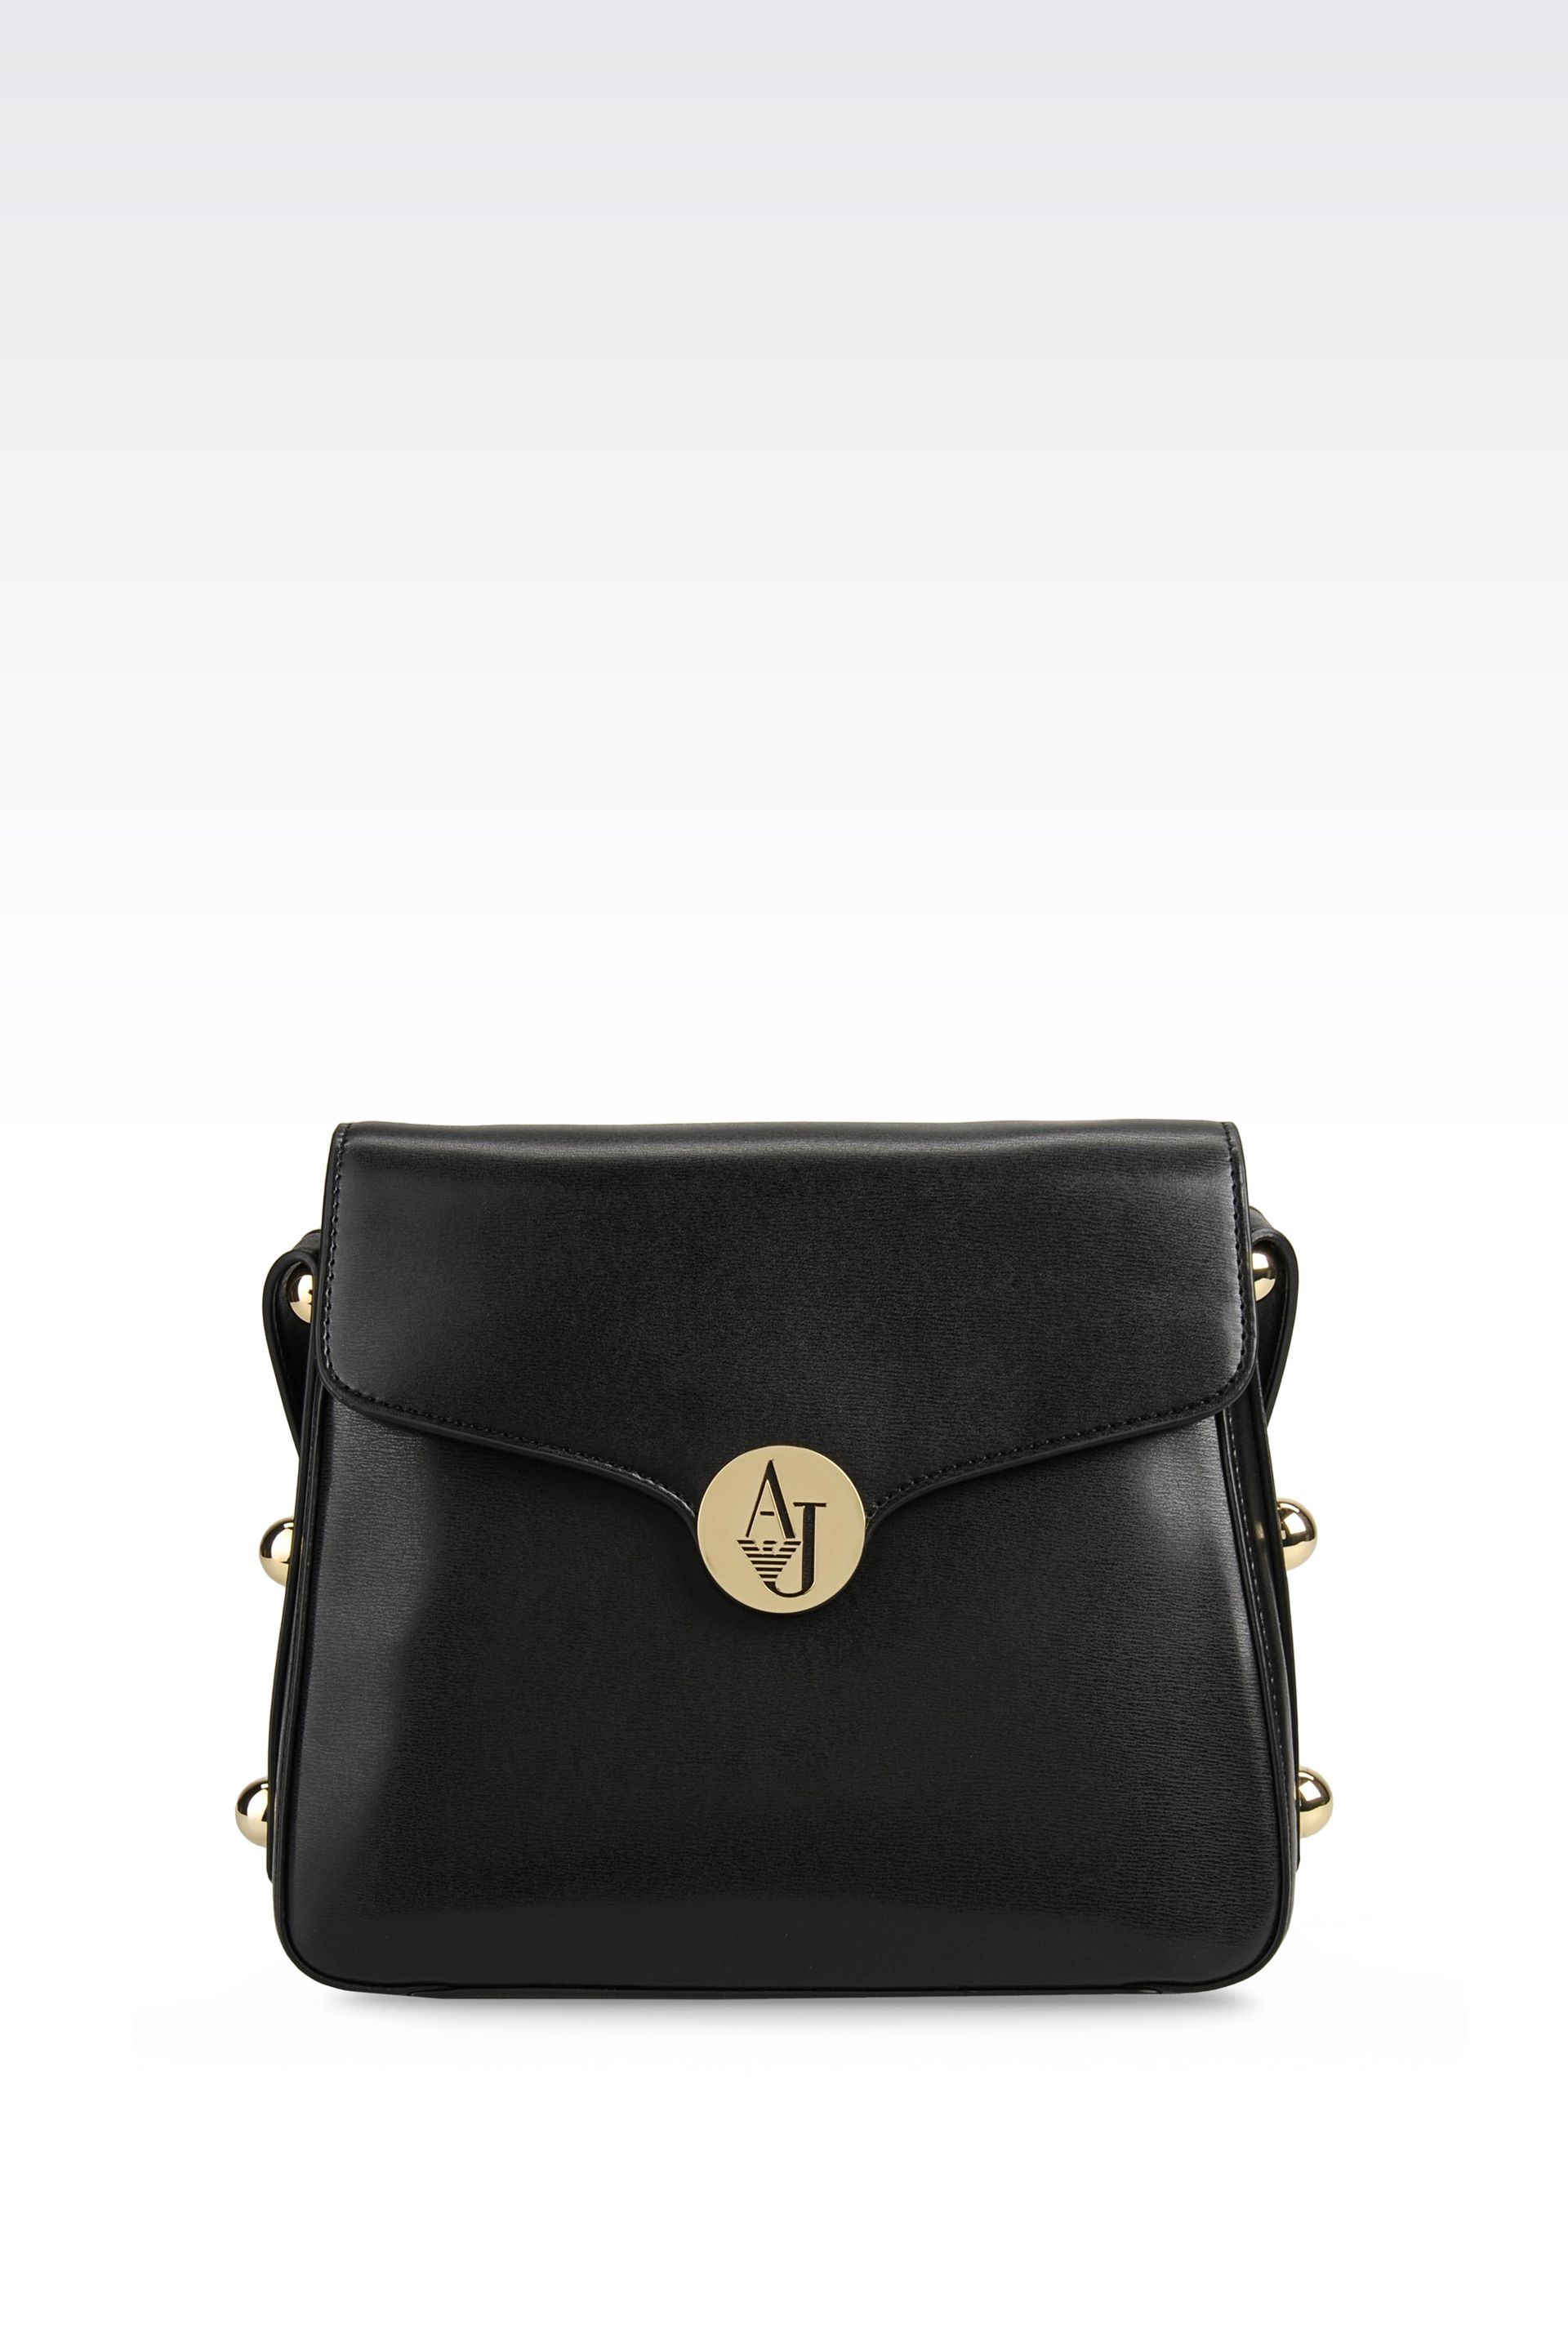 Sac A Bandouliere Armani Femme : Armani jeans shoulder bag in glossy faux leather black